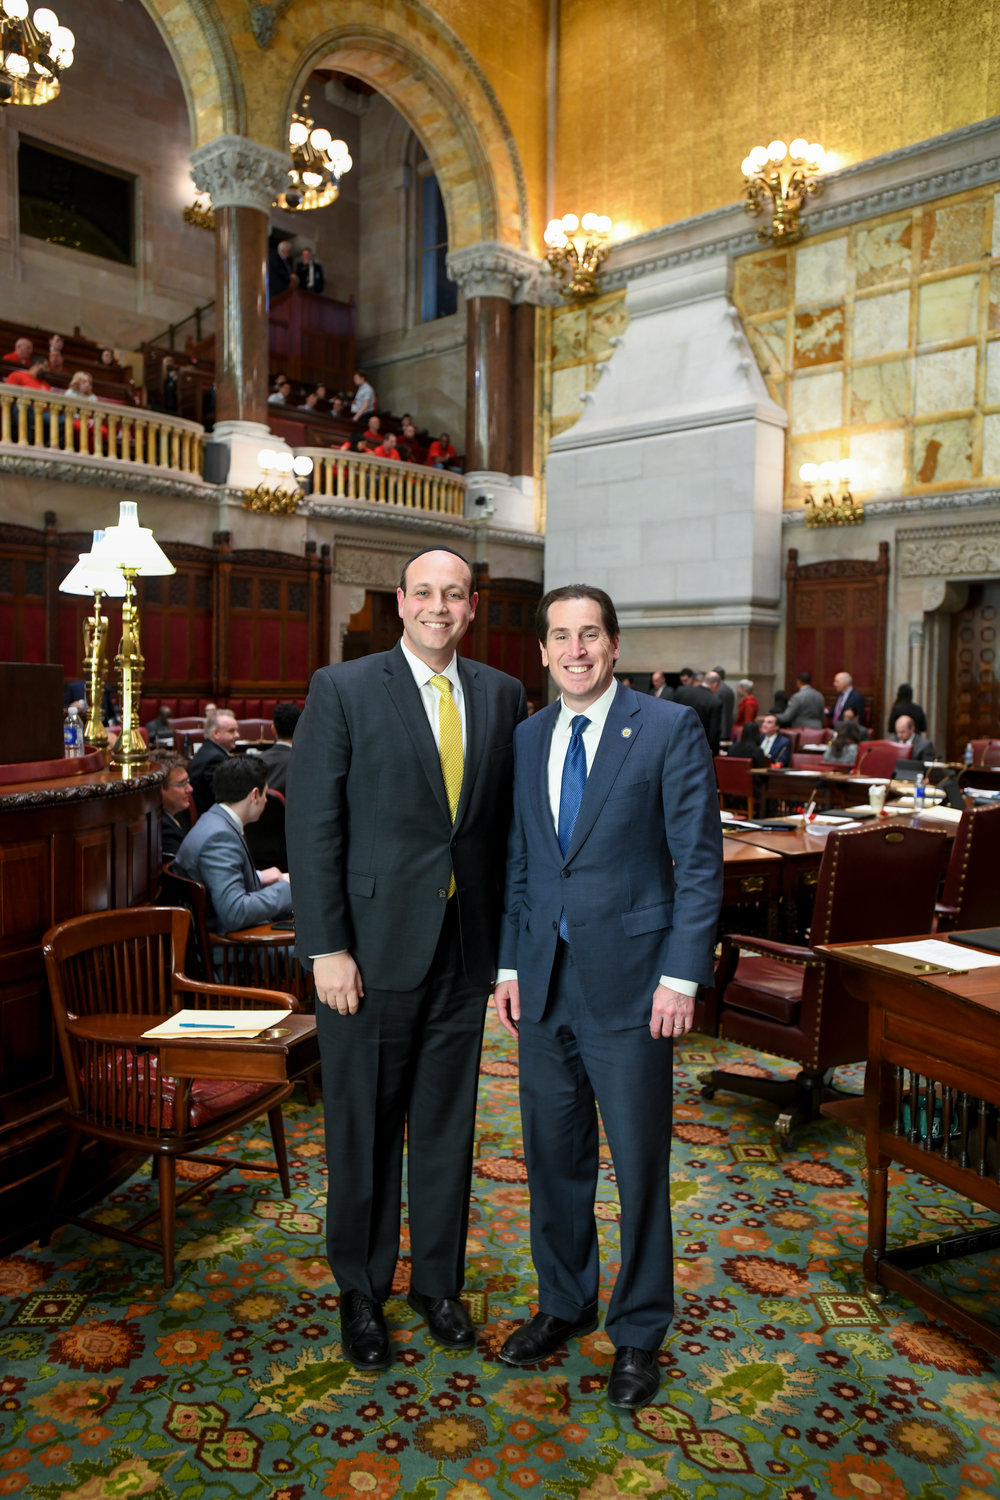 HALB Head of School Rabbi Adam Englander, left, delivered the daily invocation before the State Senate on March 12, with State Sen. Todd Kaminsky.